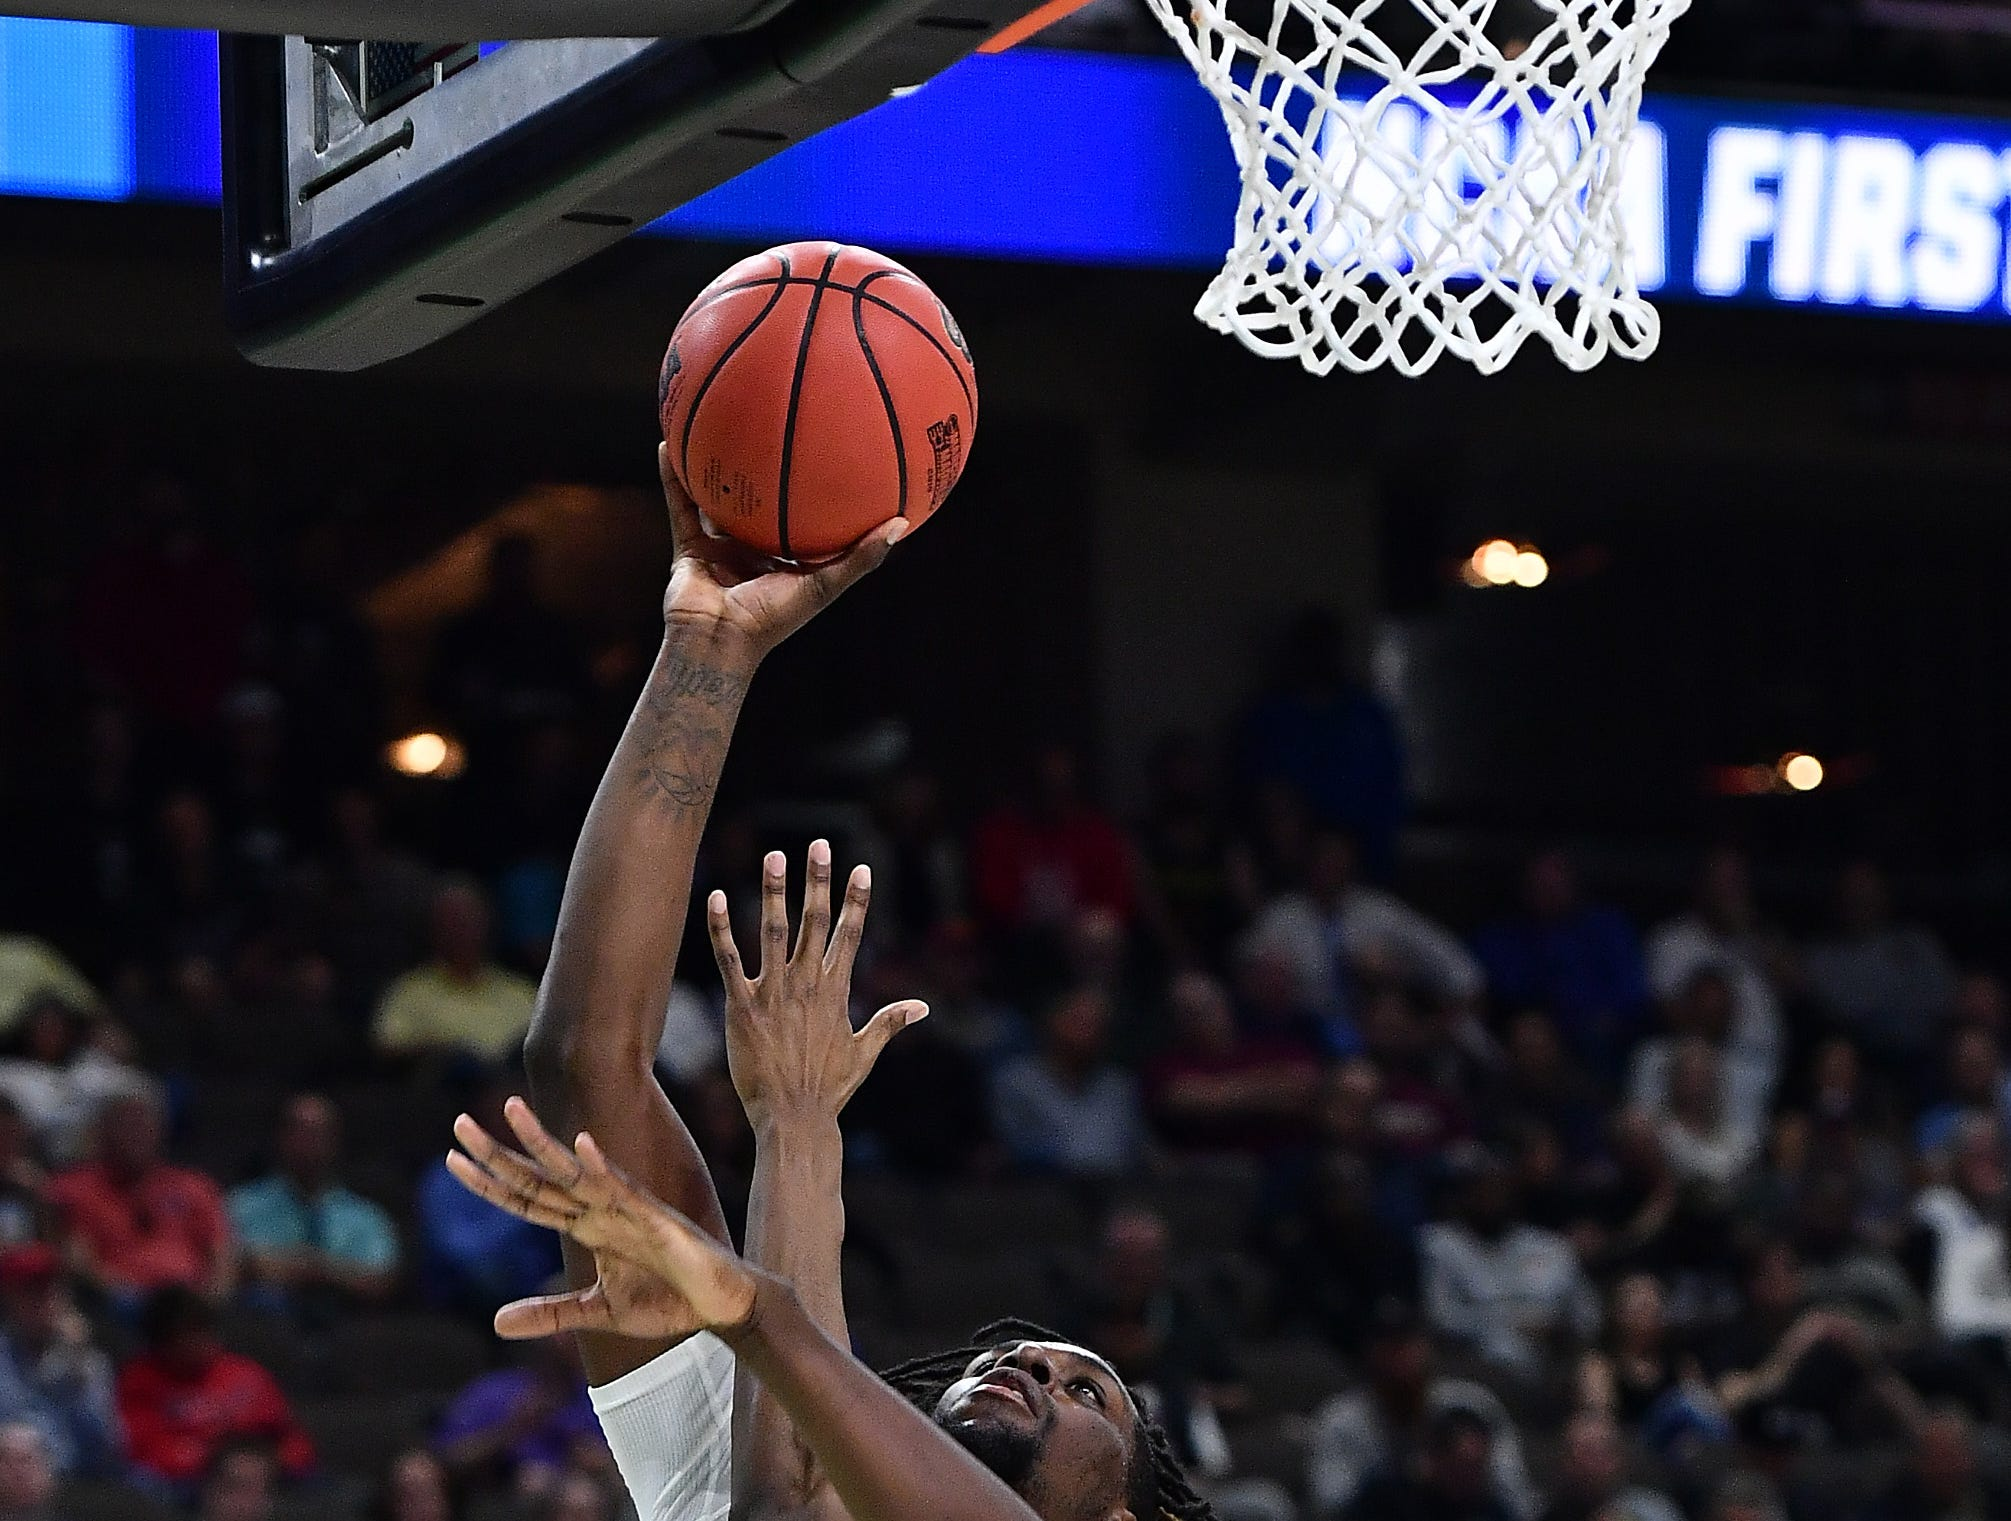 Mar 21, 2019; Jacksonville, FL, USA; LSU Tigers forward Naz Reid (0) shoots over Yale Bulldogs forward Jordan Bruner (23) during the second half in the first round of the 2019 NCAA Tournament at Jacksonville Veterans Memorial Arena. Mandatory Credit: John David Mercer-USA TODAY Sports